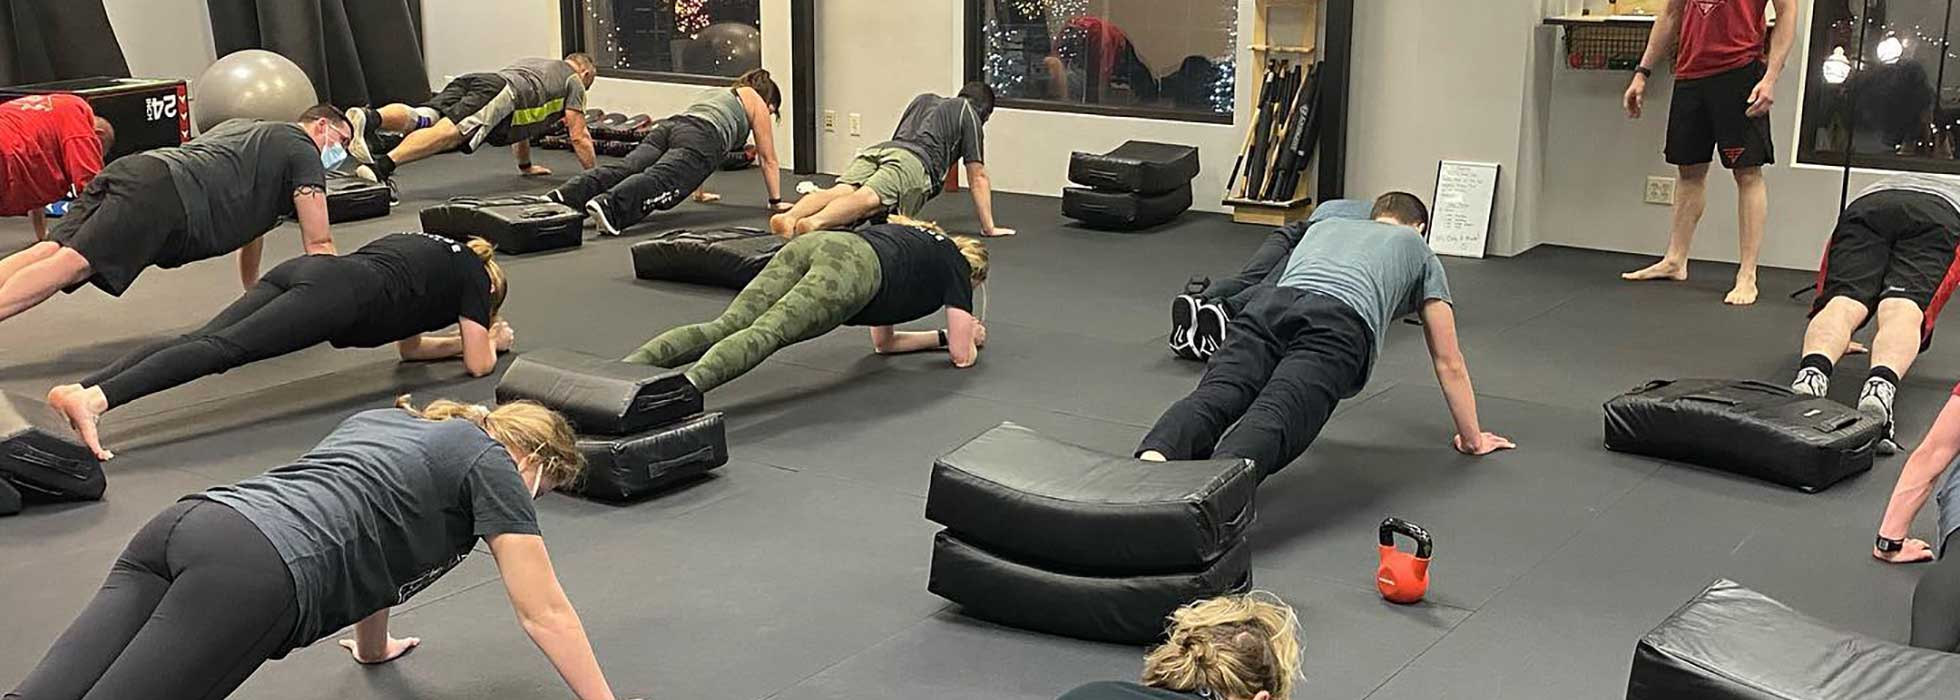 Top 5 Best Gyms To Join near Neenah WI, Top 5 Best Gyms To Join near Fox Valley WI, Top 5 Best Gyms To Join near Fox Cities WI, Top 5 Best Gyms To Join near Menasha WI, Top 5 Best Gyms To Join near Green Bay WI, Top 5 Best Gyms To Join near Appleton WI, Top 5 Best Gyms To Join near Oshkosh WI